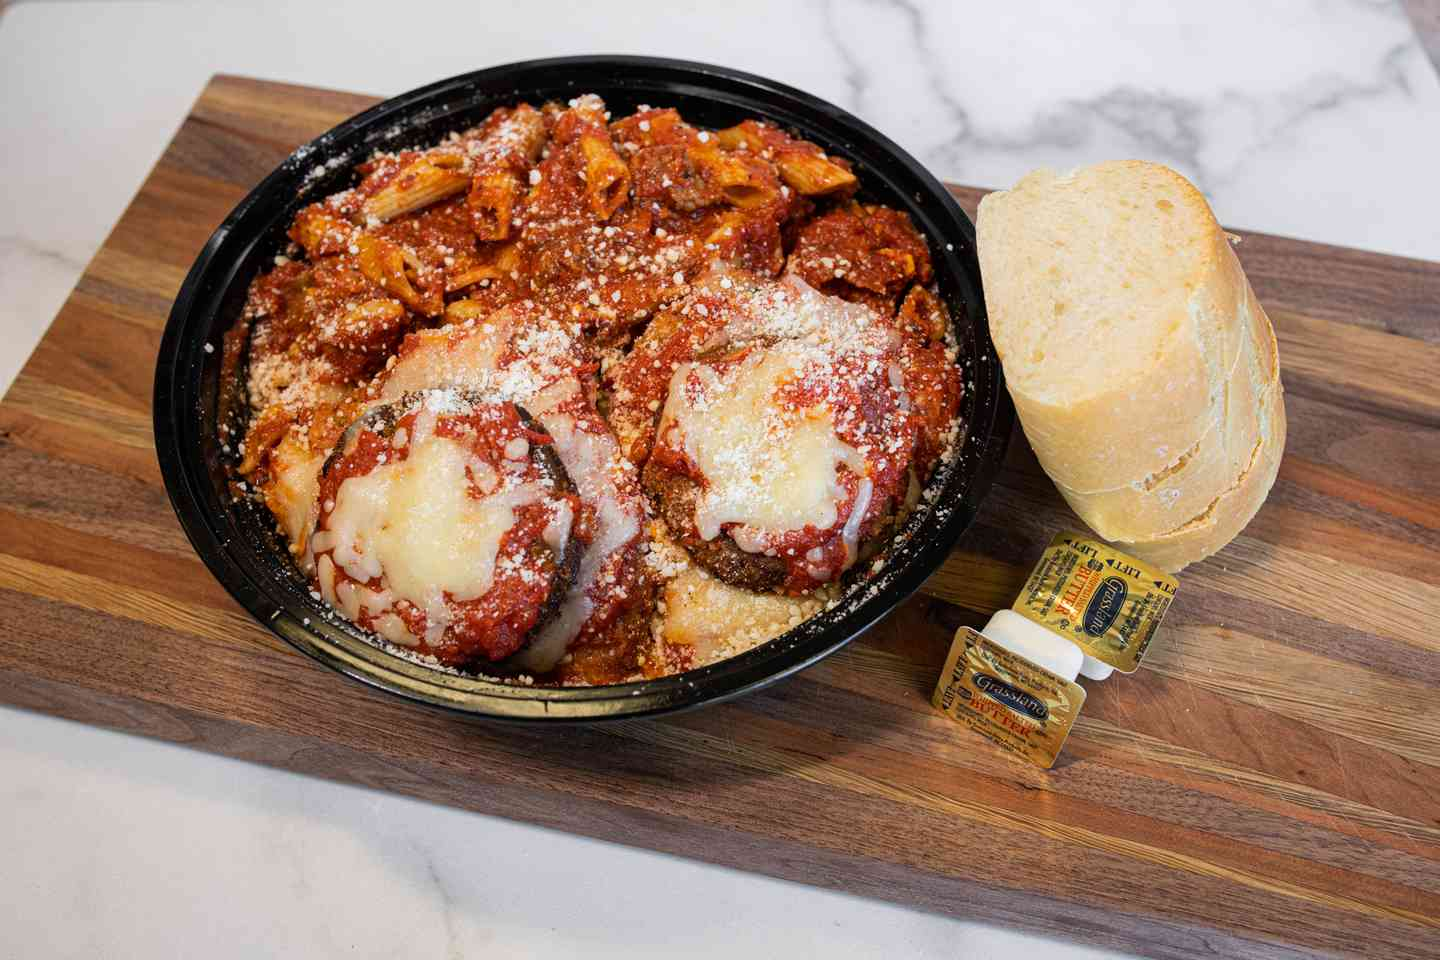 Ciaccia's Dinner Special